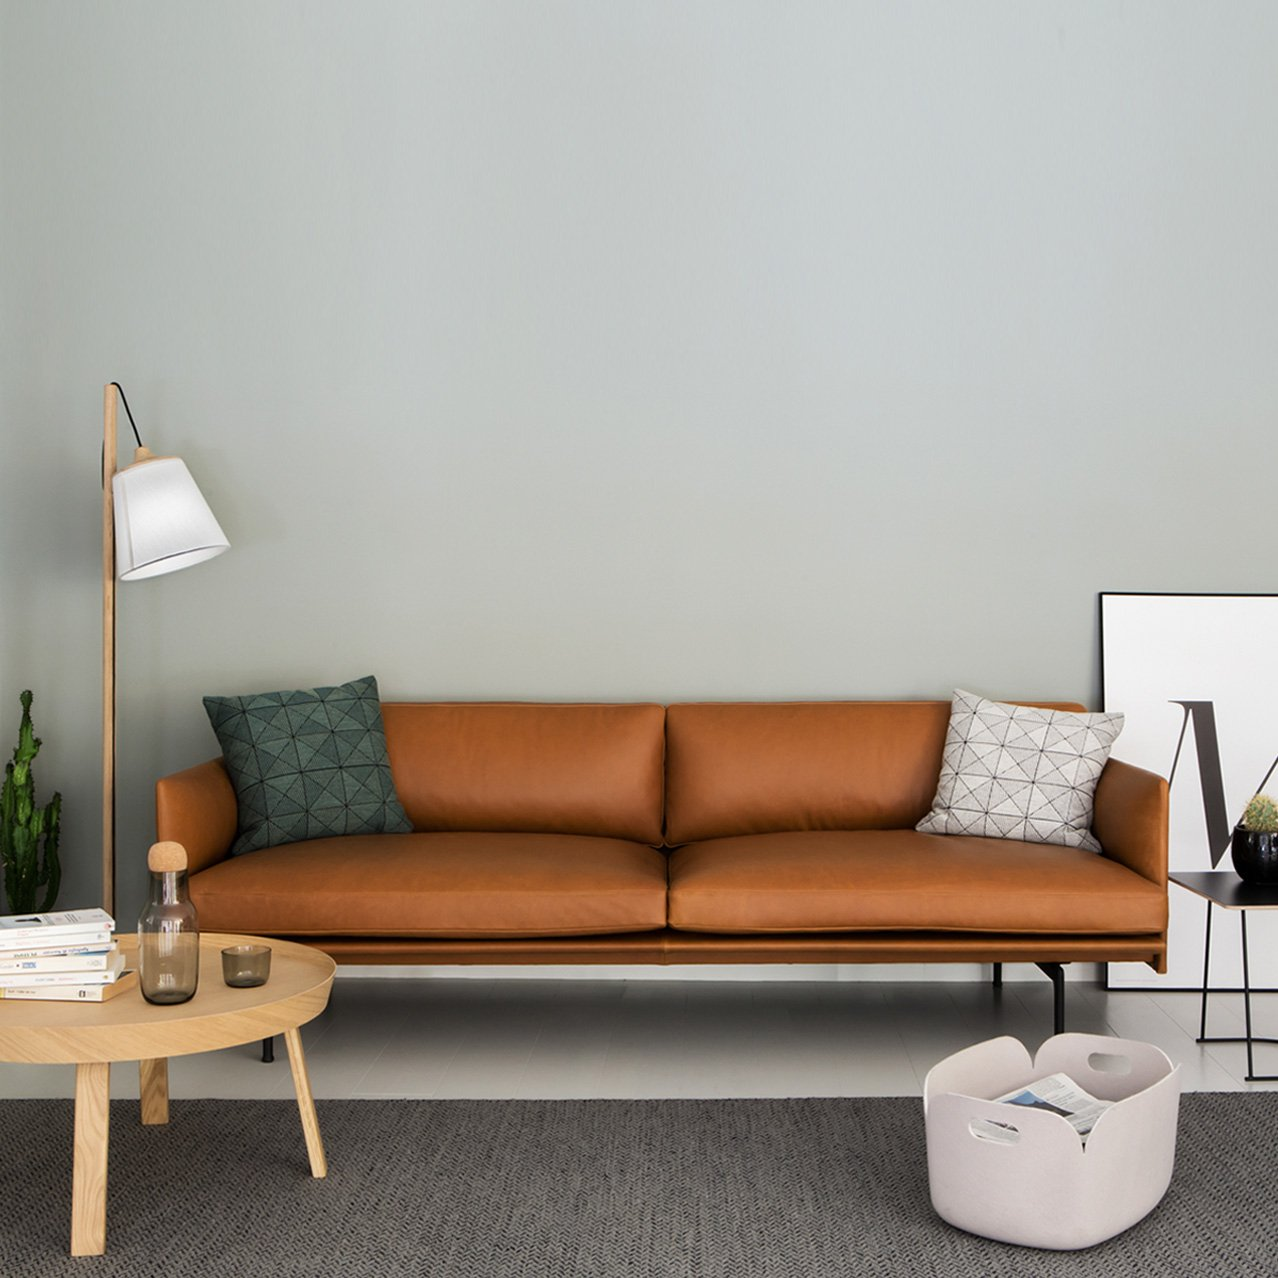 Full Size of Muuto Sofa Sofabord Cecilie Manz Outline Review Furniture Uk Oslo 2 Seater Sale Rest Connect Xl Dimensions Airy Large Tilbud Marken Englisches Ecksofa Garten Sofa Muuto Sofa